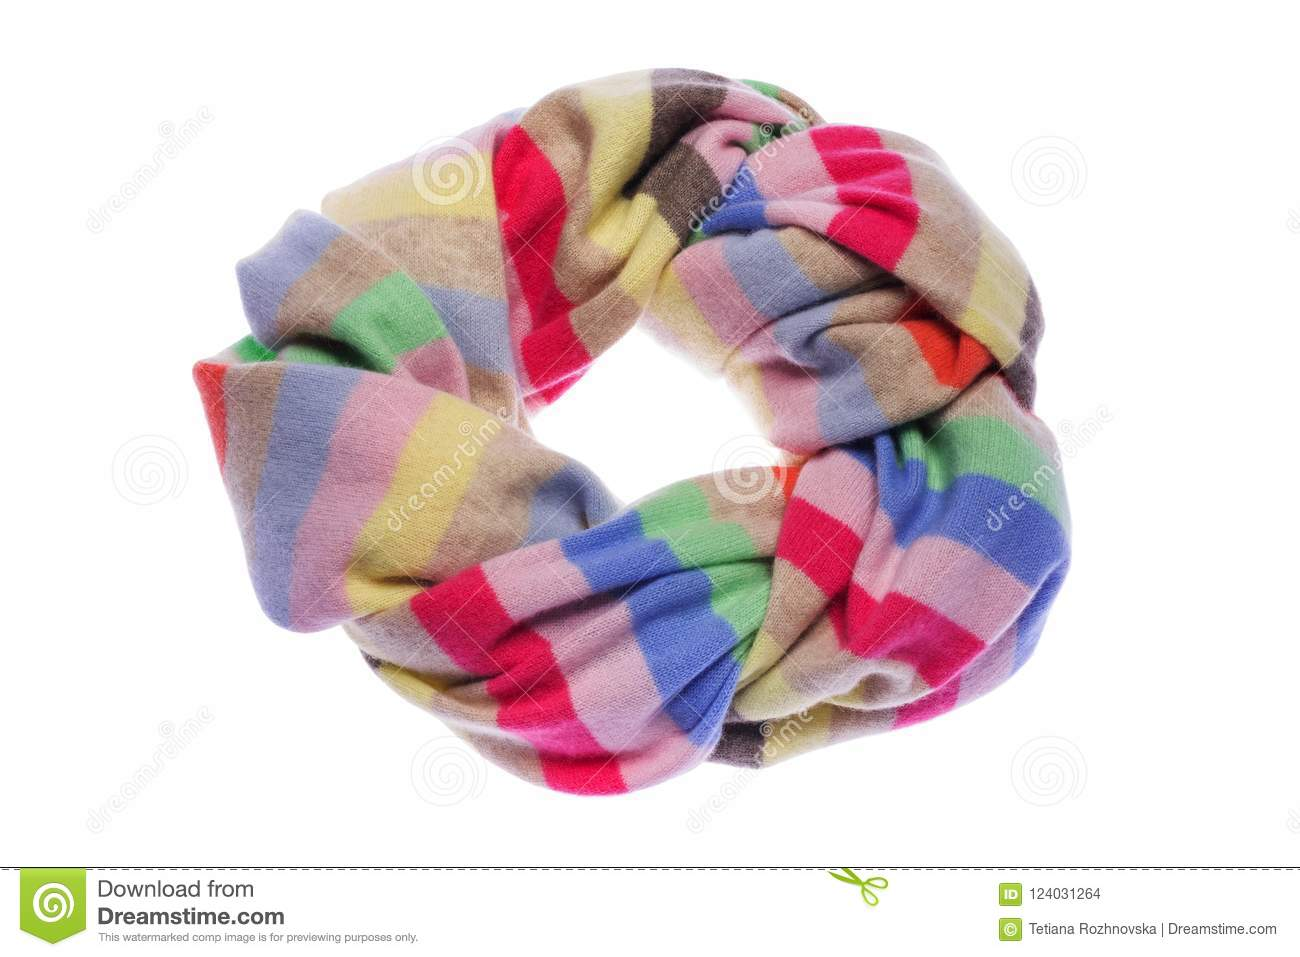 Wrapped in a circle a warm winter scarf.